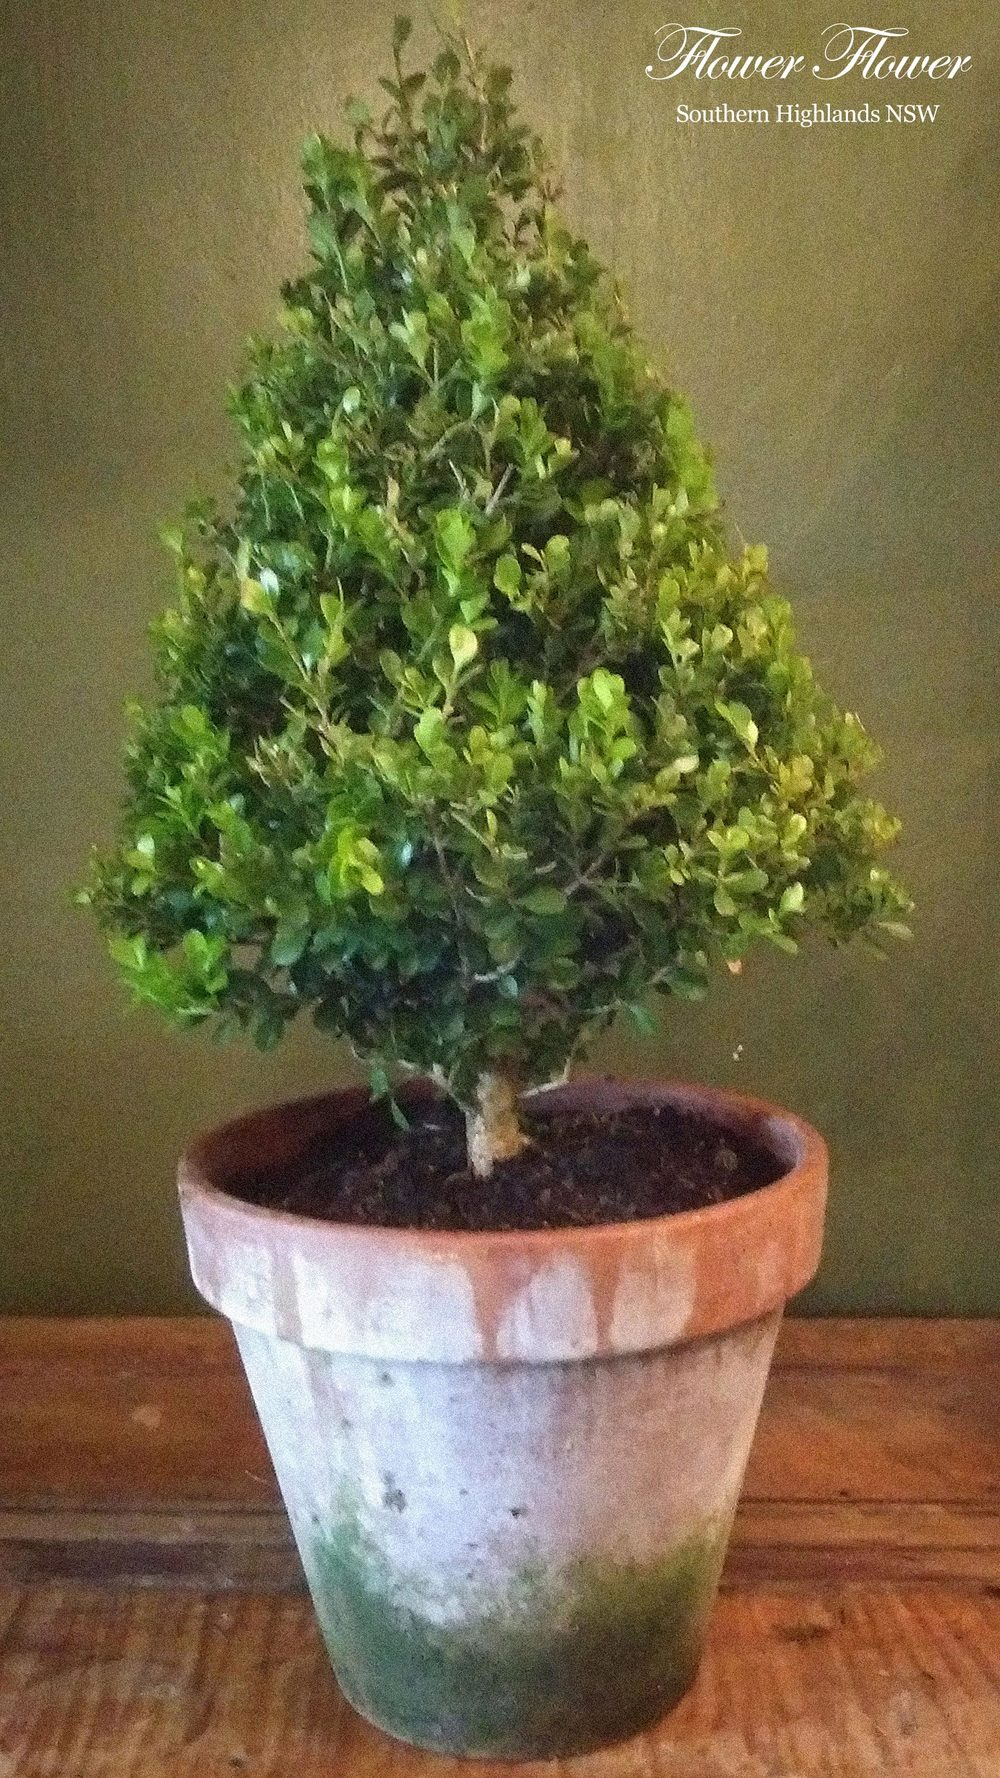 A_Jasmine_Buxus_Appro27cm_From110_2.jpg